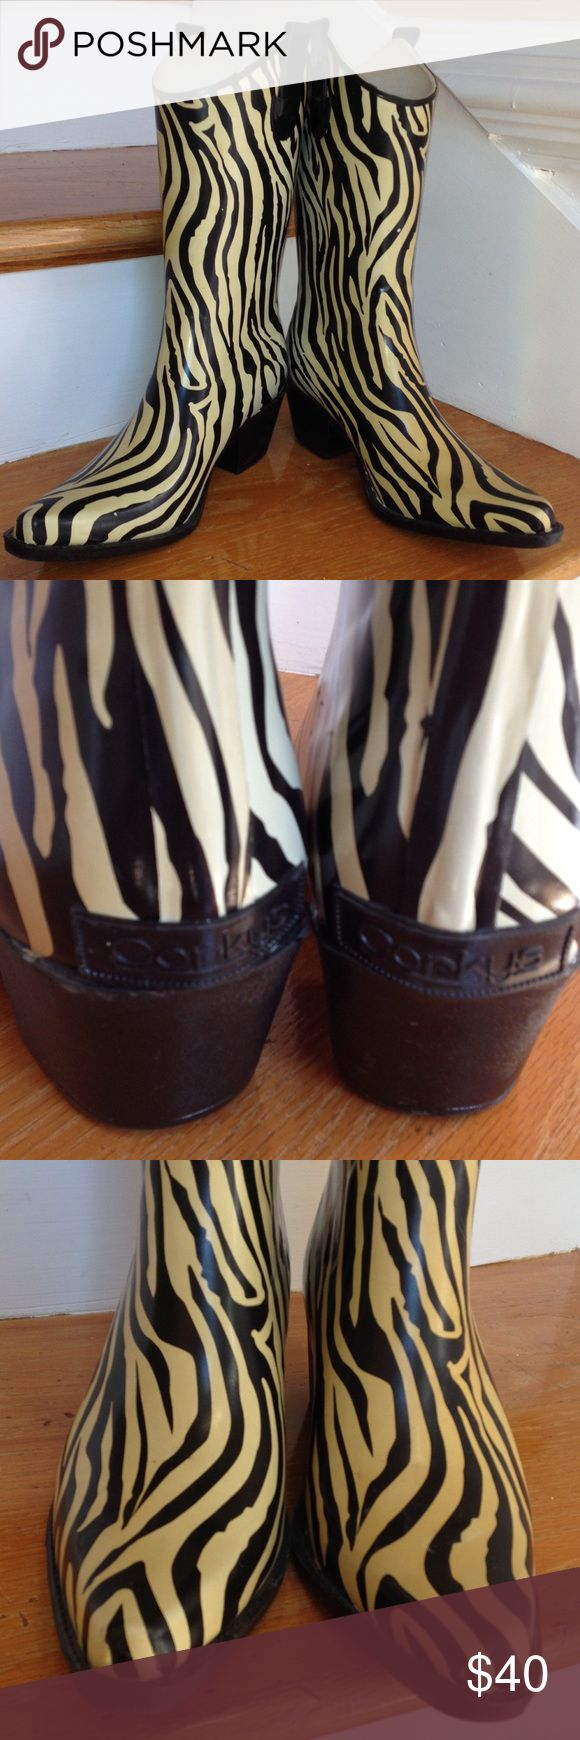 Corkys zebra pattern Gold/Black cowboy rain boots Almost perfect! And so unique... Perfect for the person who wears a lot of black gold and white Corkys Shoes Winter & Rain Boots